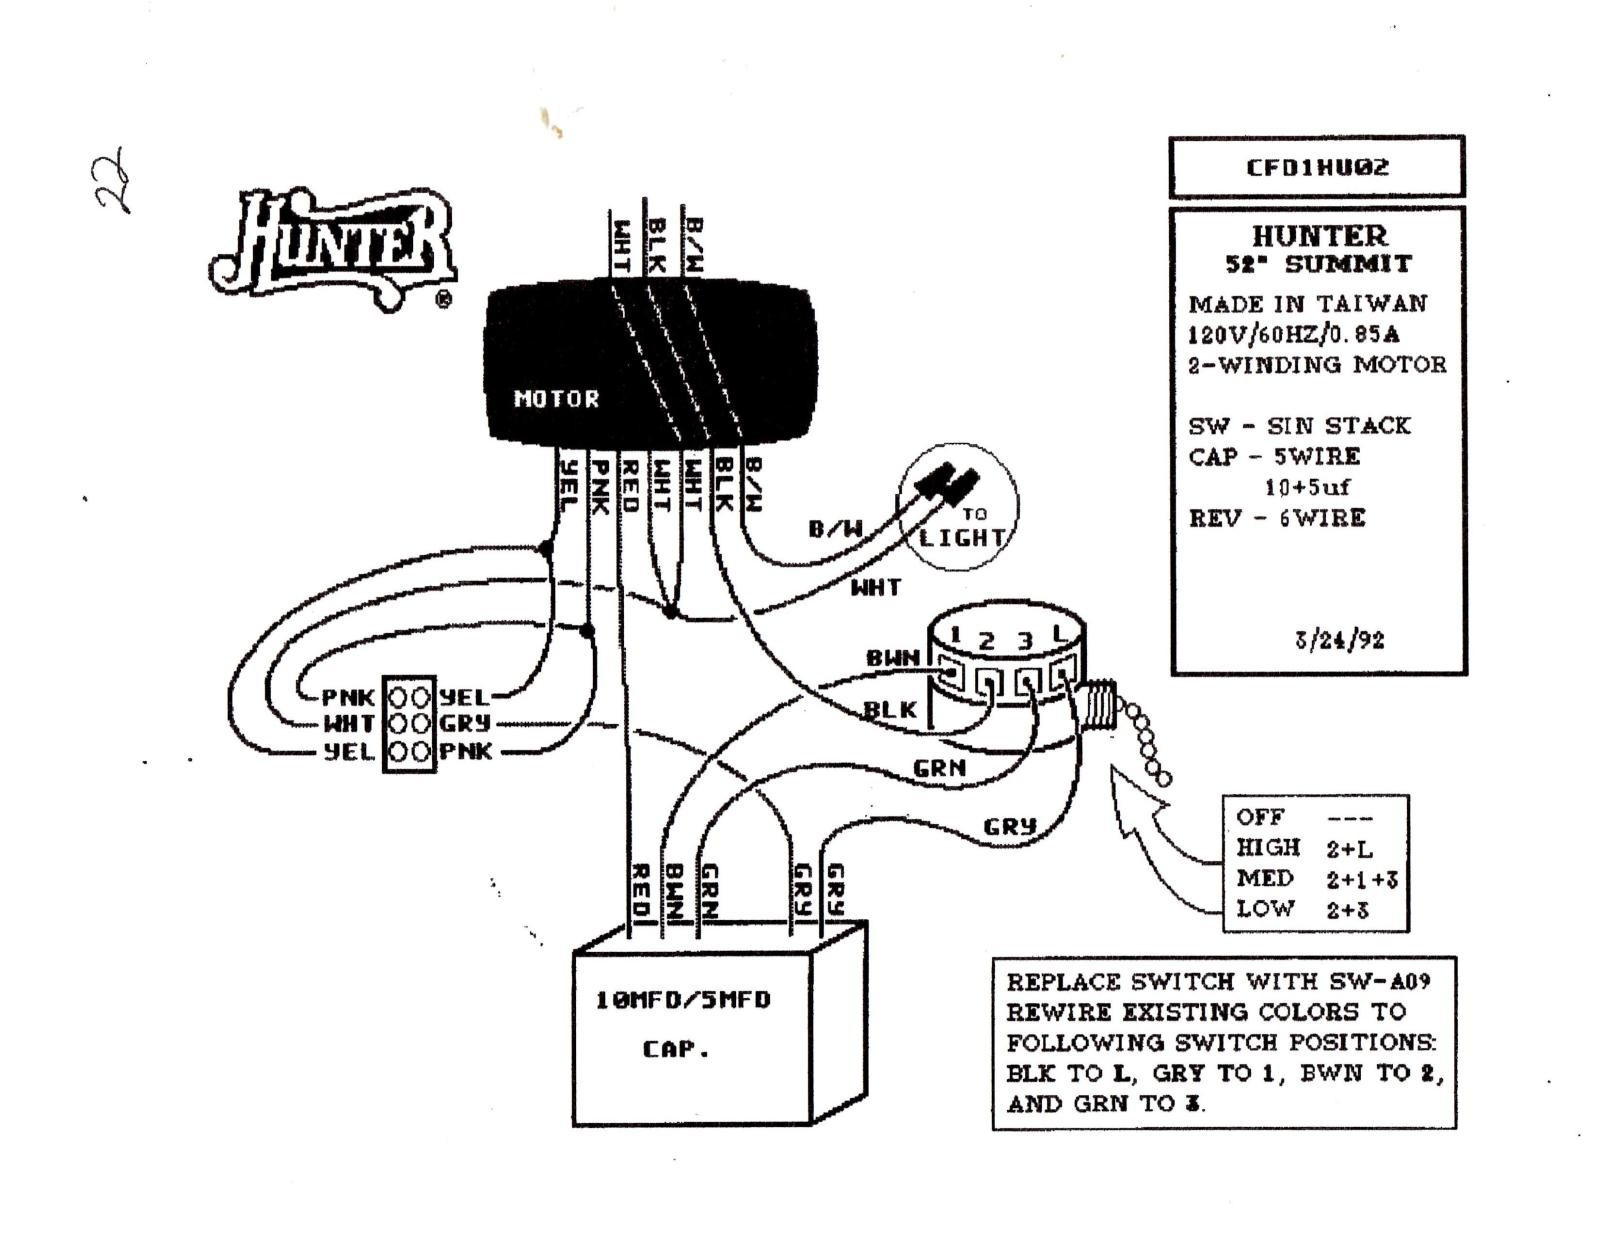 hampton fan wiring schematic hampton bay ceiling fan wiring schematic | free wiring diagram #2